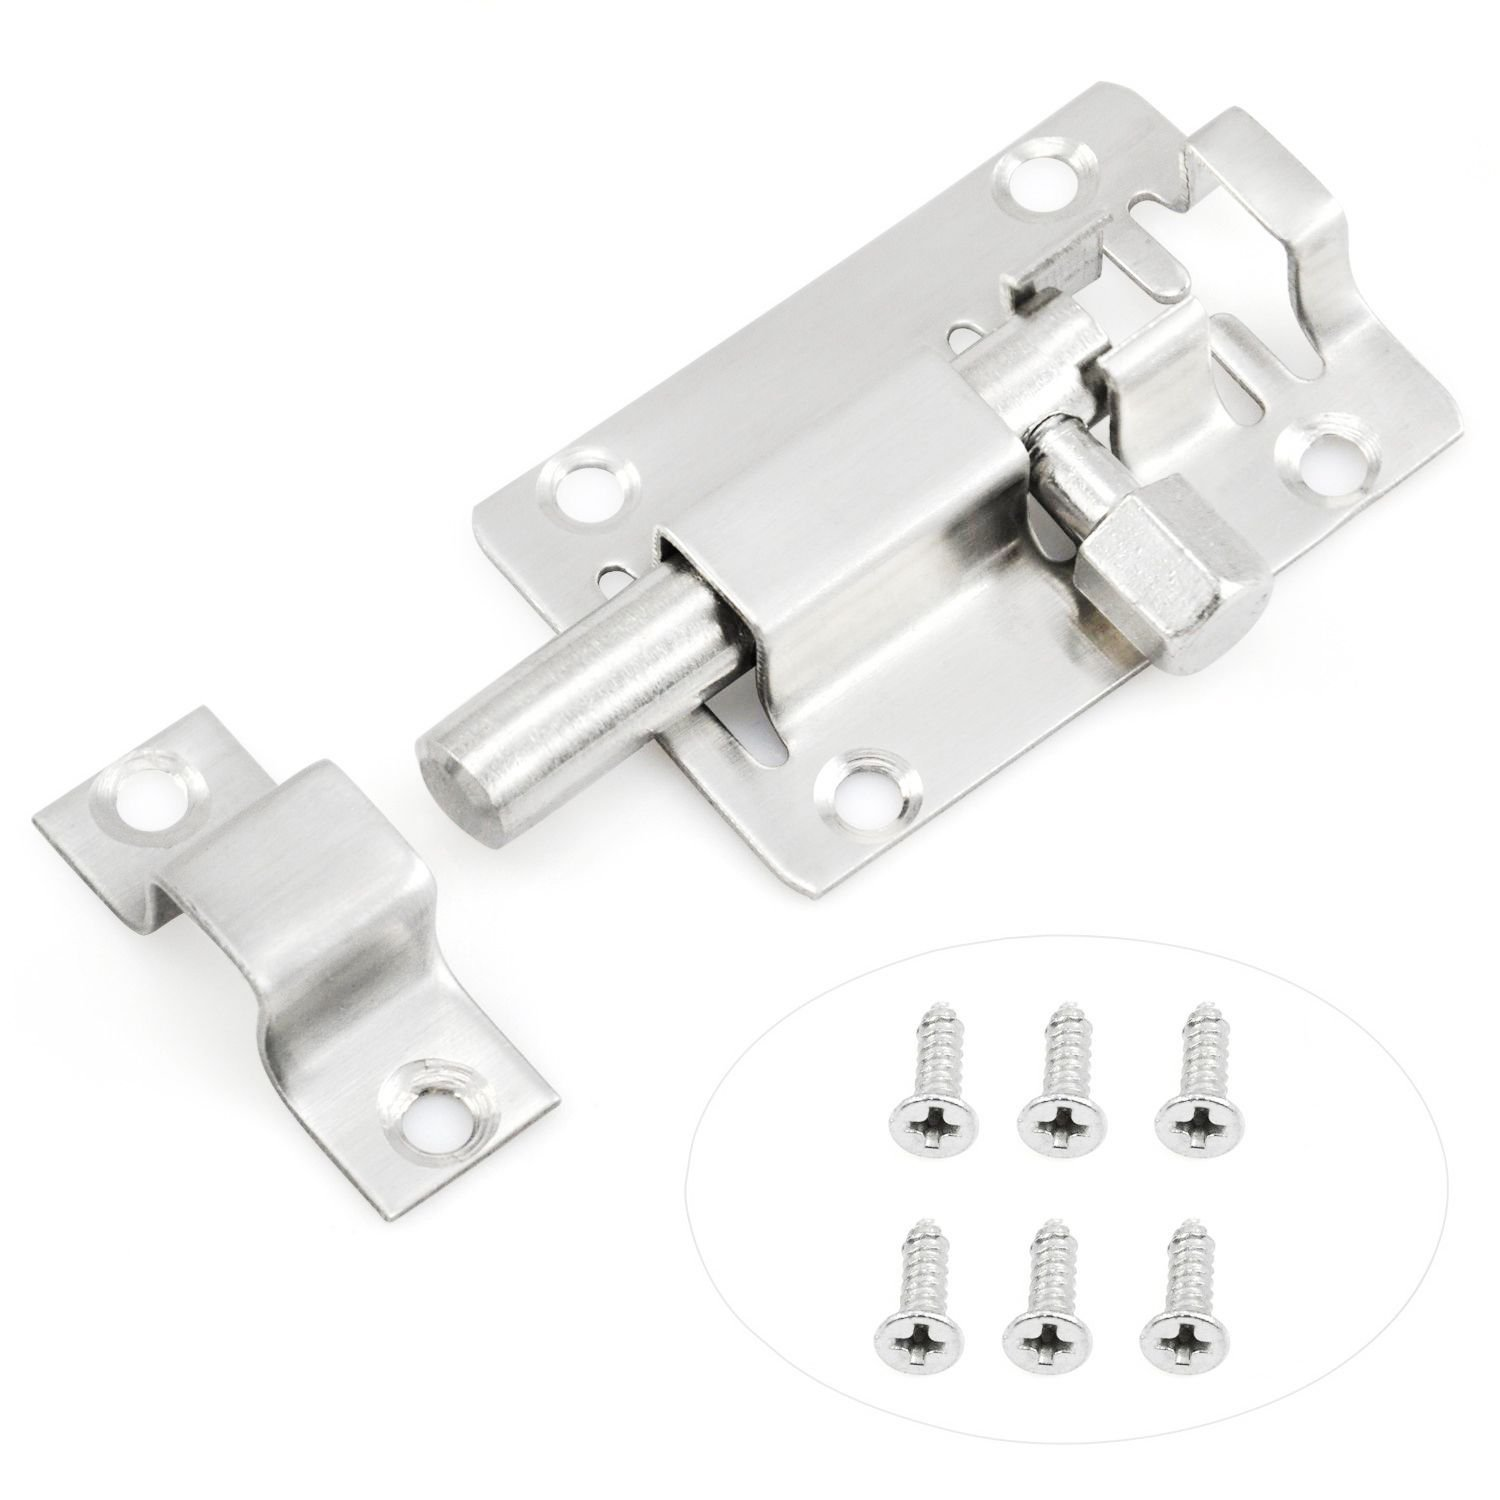 Nrpfell Door Lock Slide Bolt for Bathroom, Toilet, Shed, Bedroom, Furniture Catch Latch Easy Fit